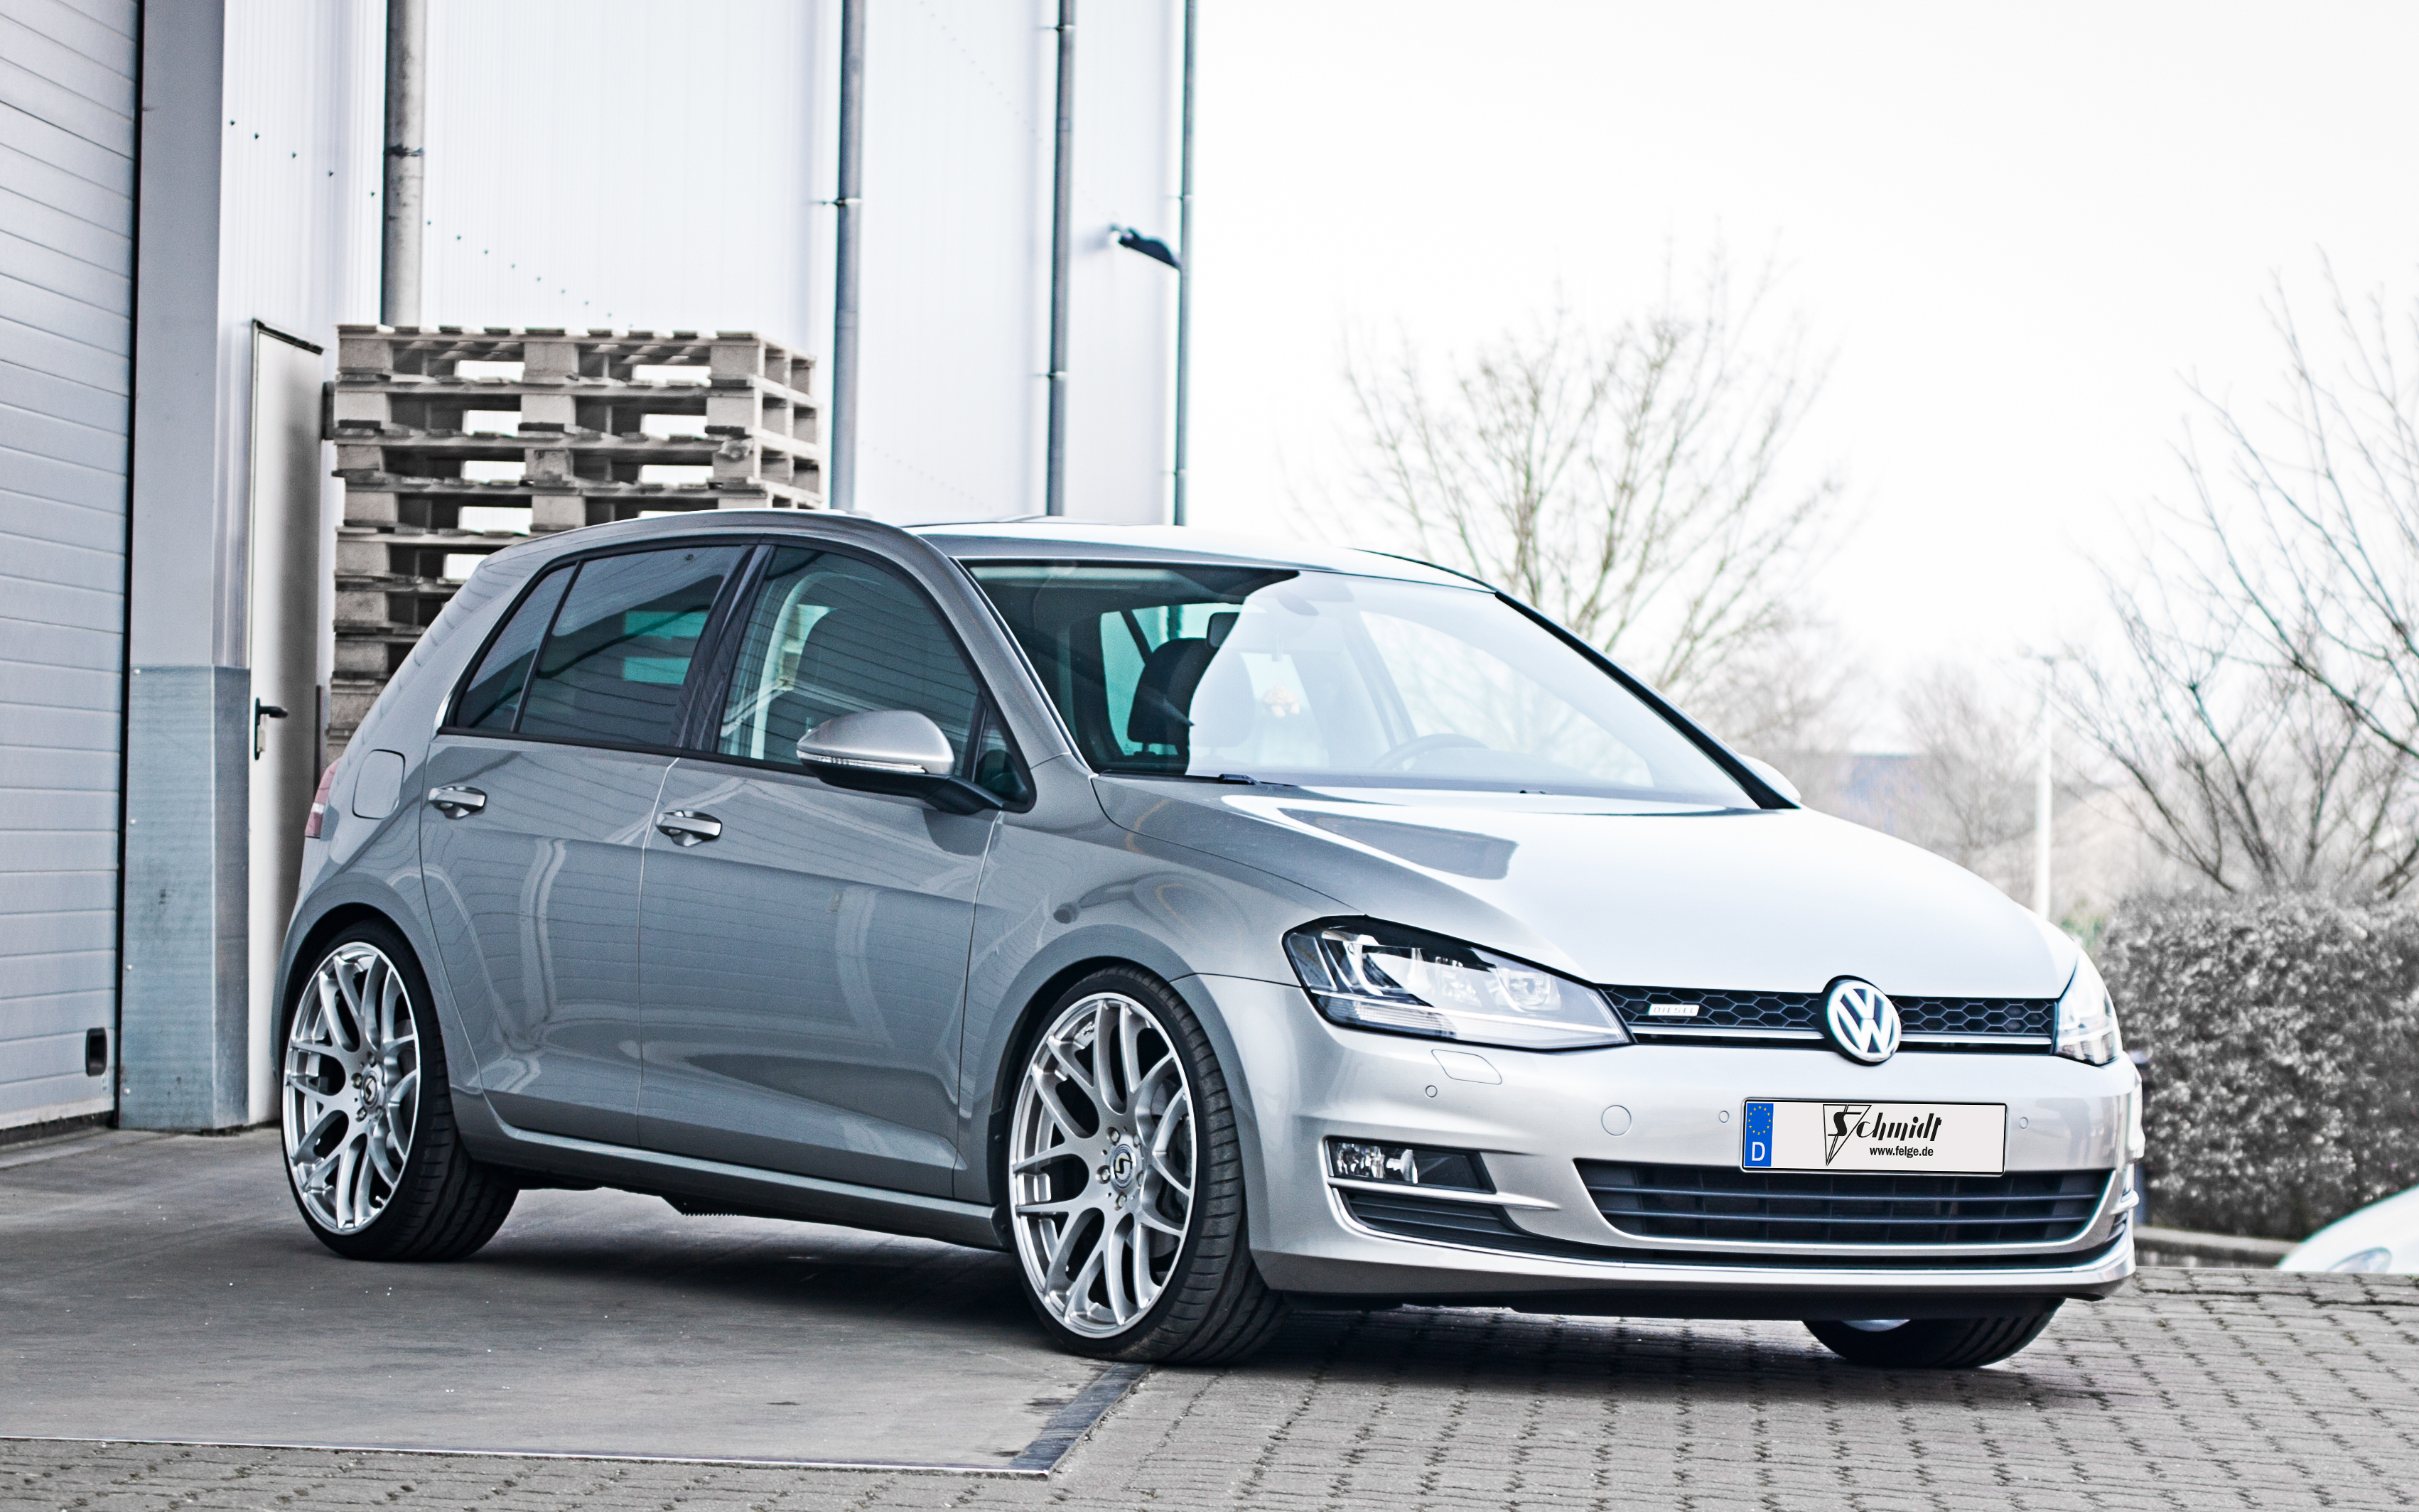 vw golf vii gambit 1 tlg 20 zoll vw bildergalerie. Black Bedroom Furniture Sets. Home Design Ideas